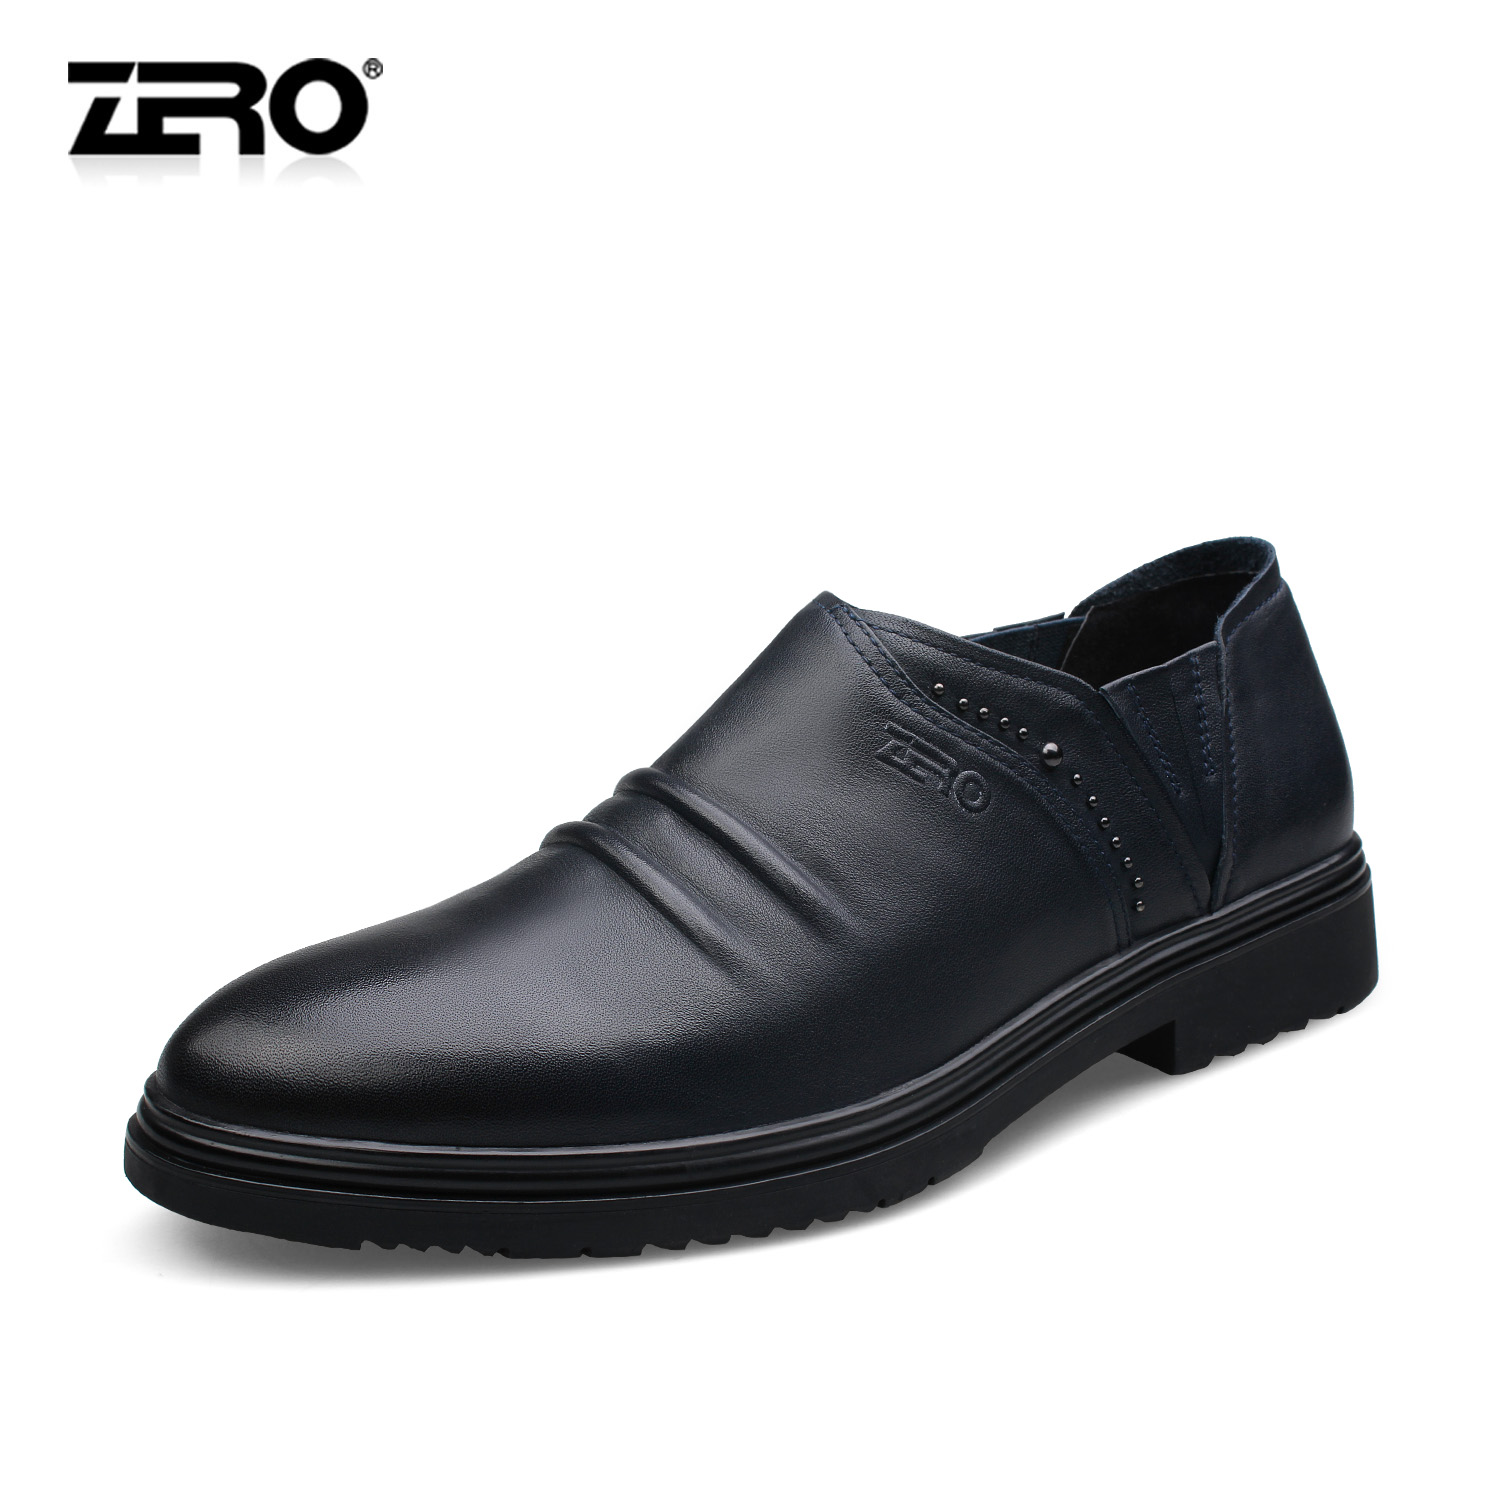 Zero zero autumn mens business casual shoes fashion shoes soft soled leather shoes child tide of england men's f6567